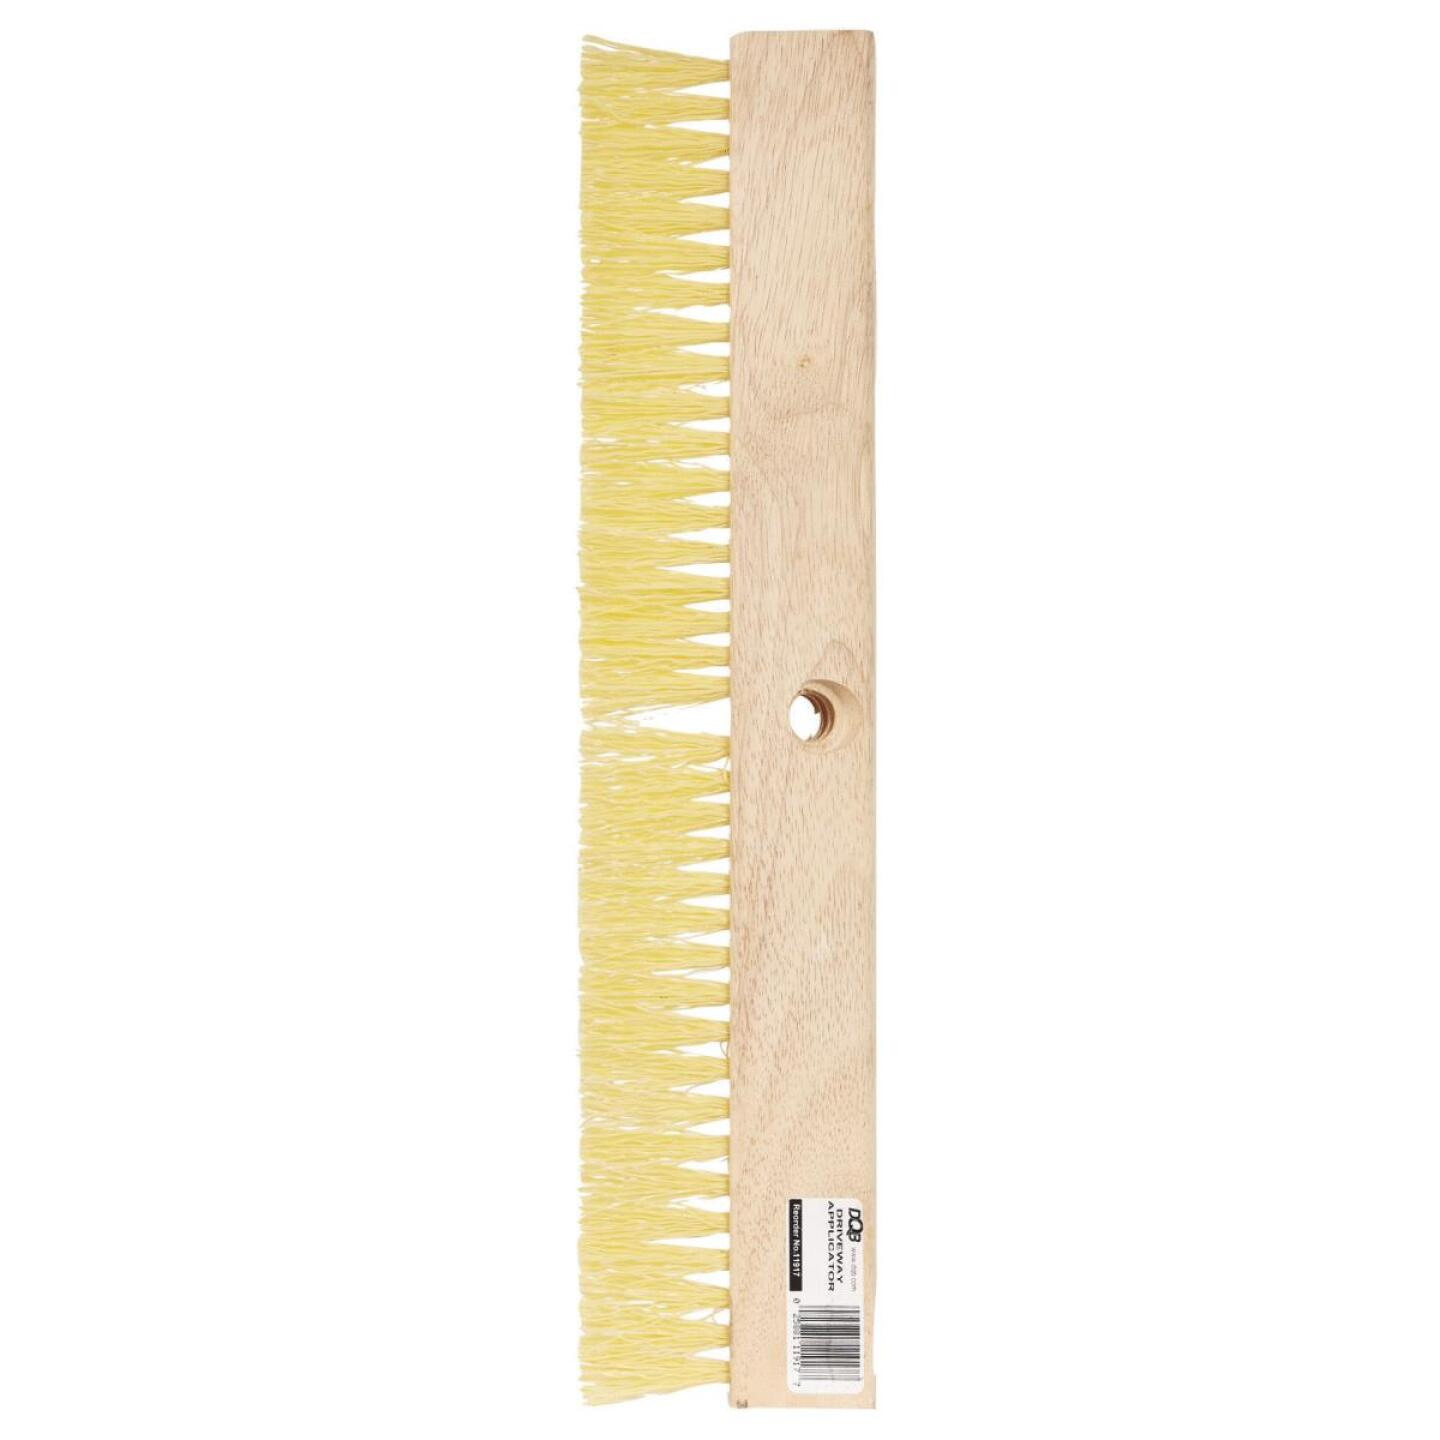 DQB 18 In. Squeegee Driveway Brush Image 2